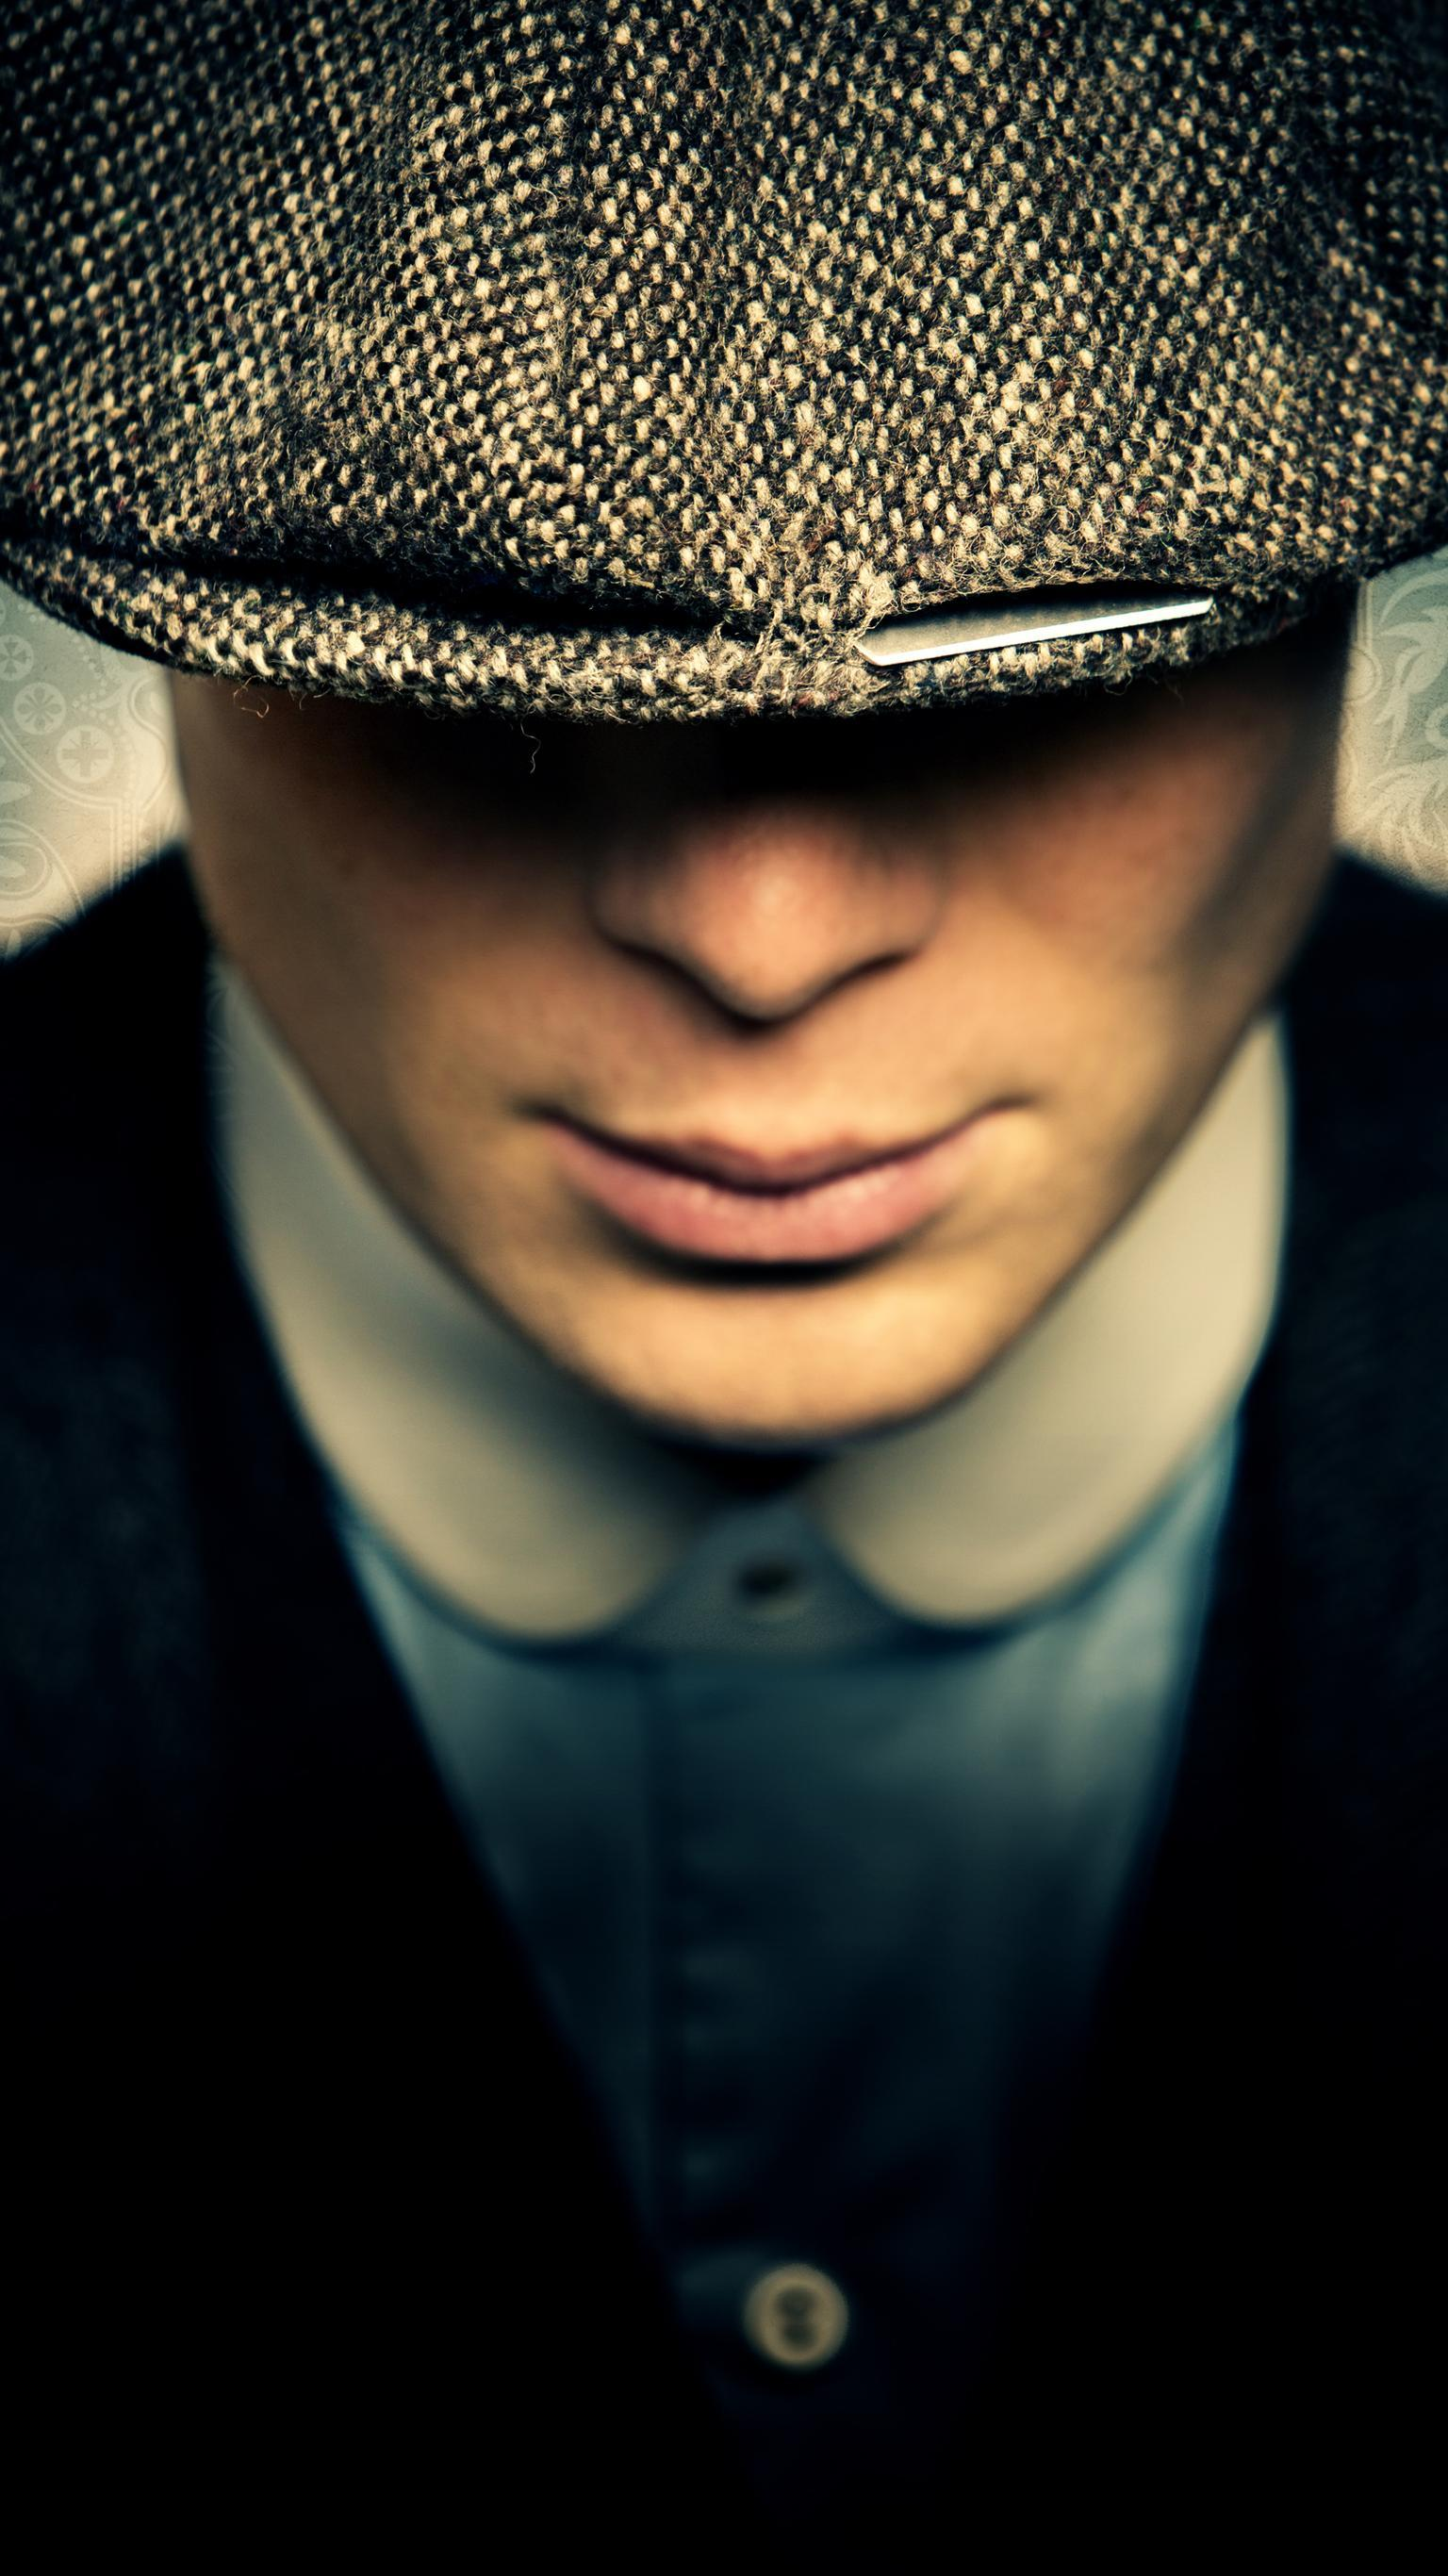 Peaky Blinders Hd Wallpapers Wallpaper Cave